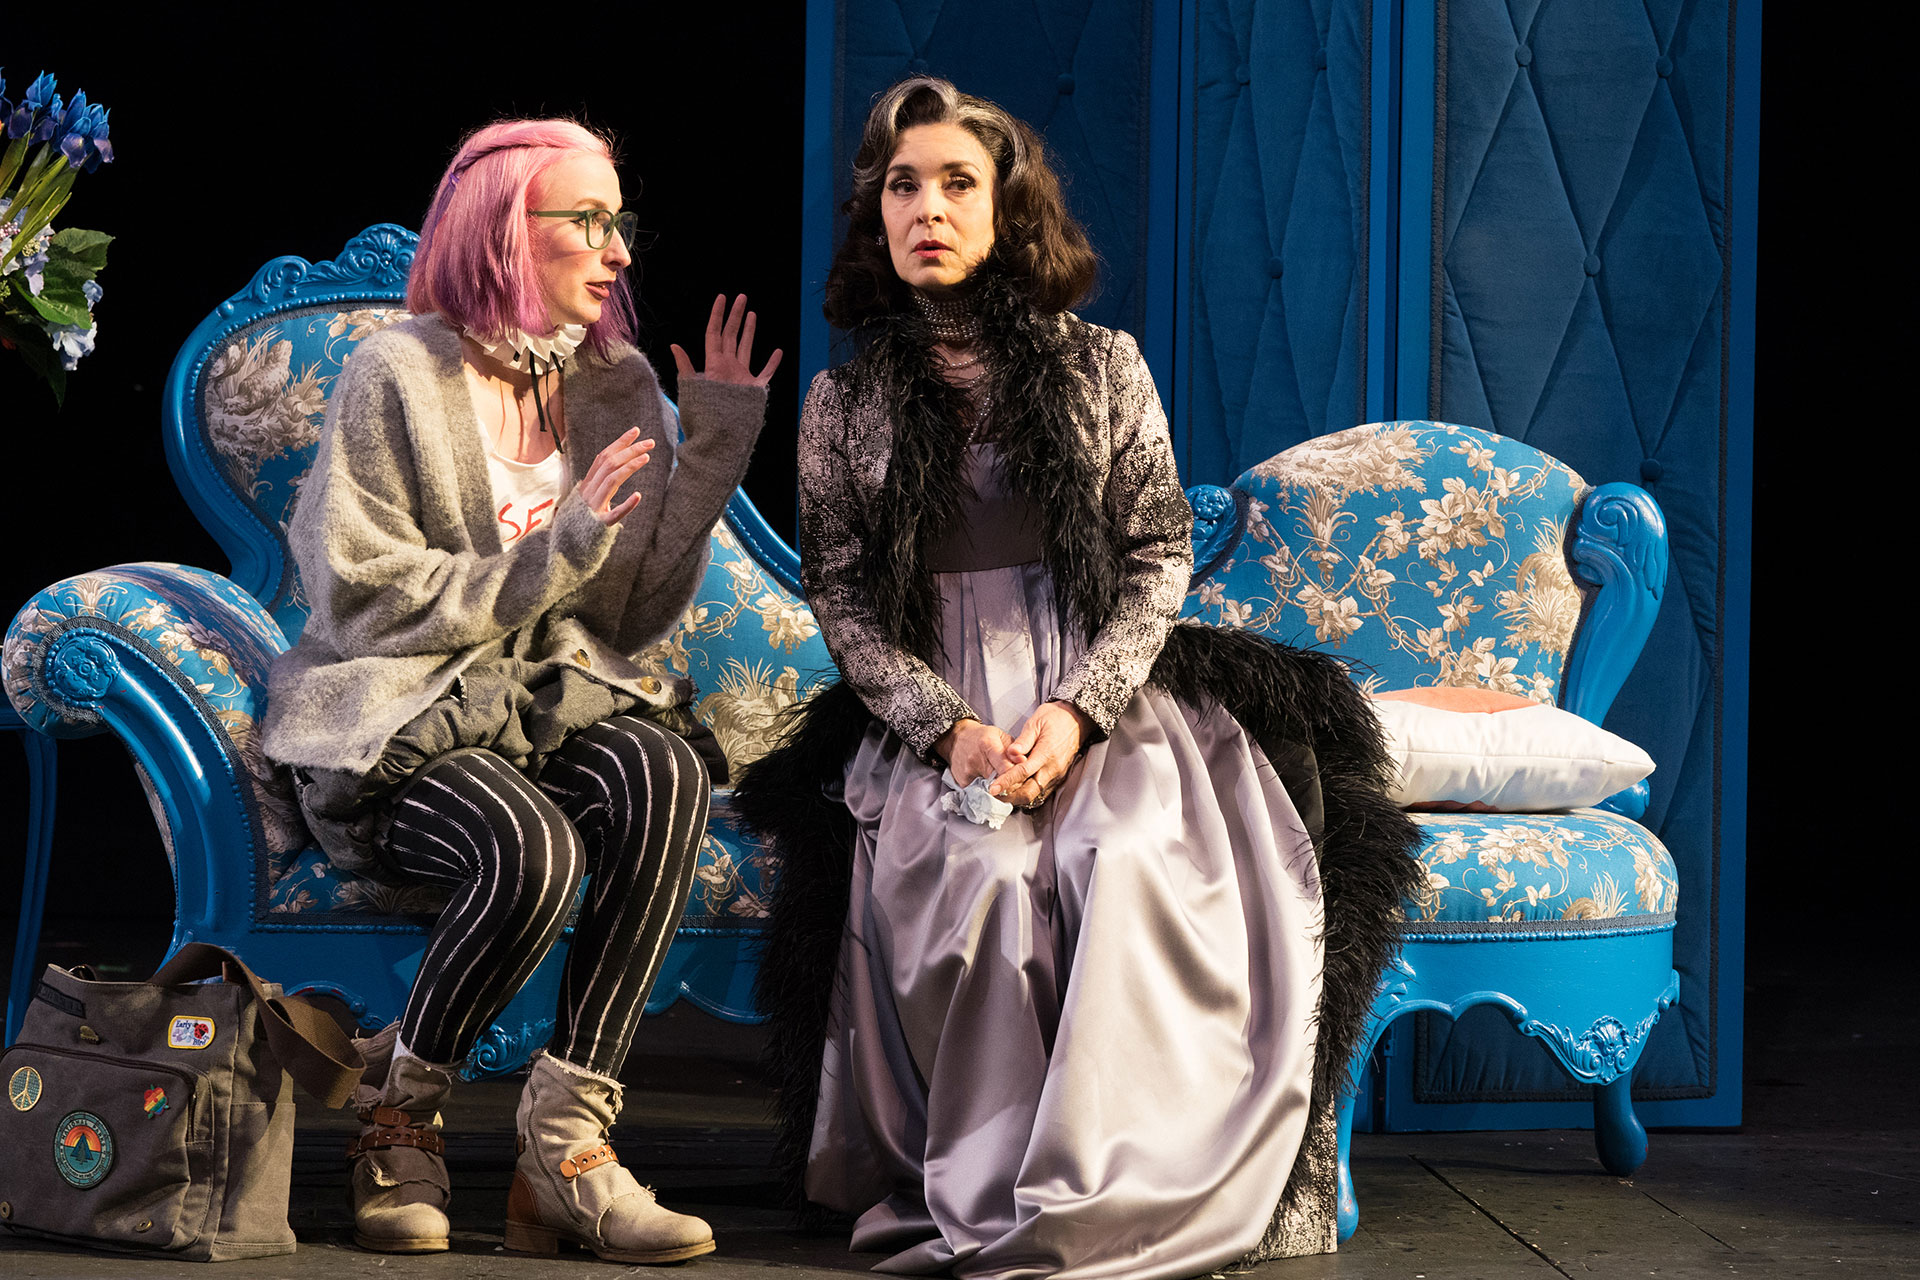 Helen talks with the Countess of Rossillion in 'All's Well That Ends Well' at Oregon Shakespeare Festival